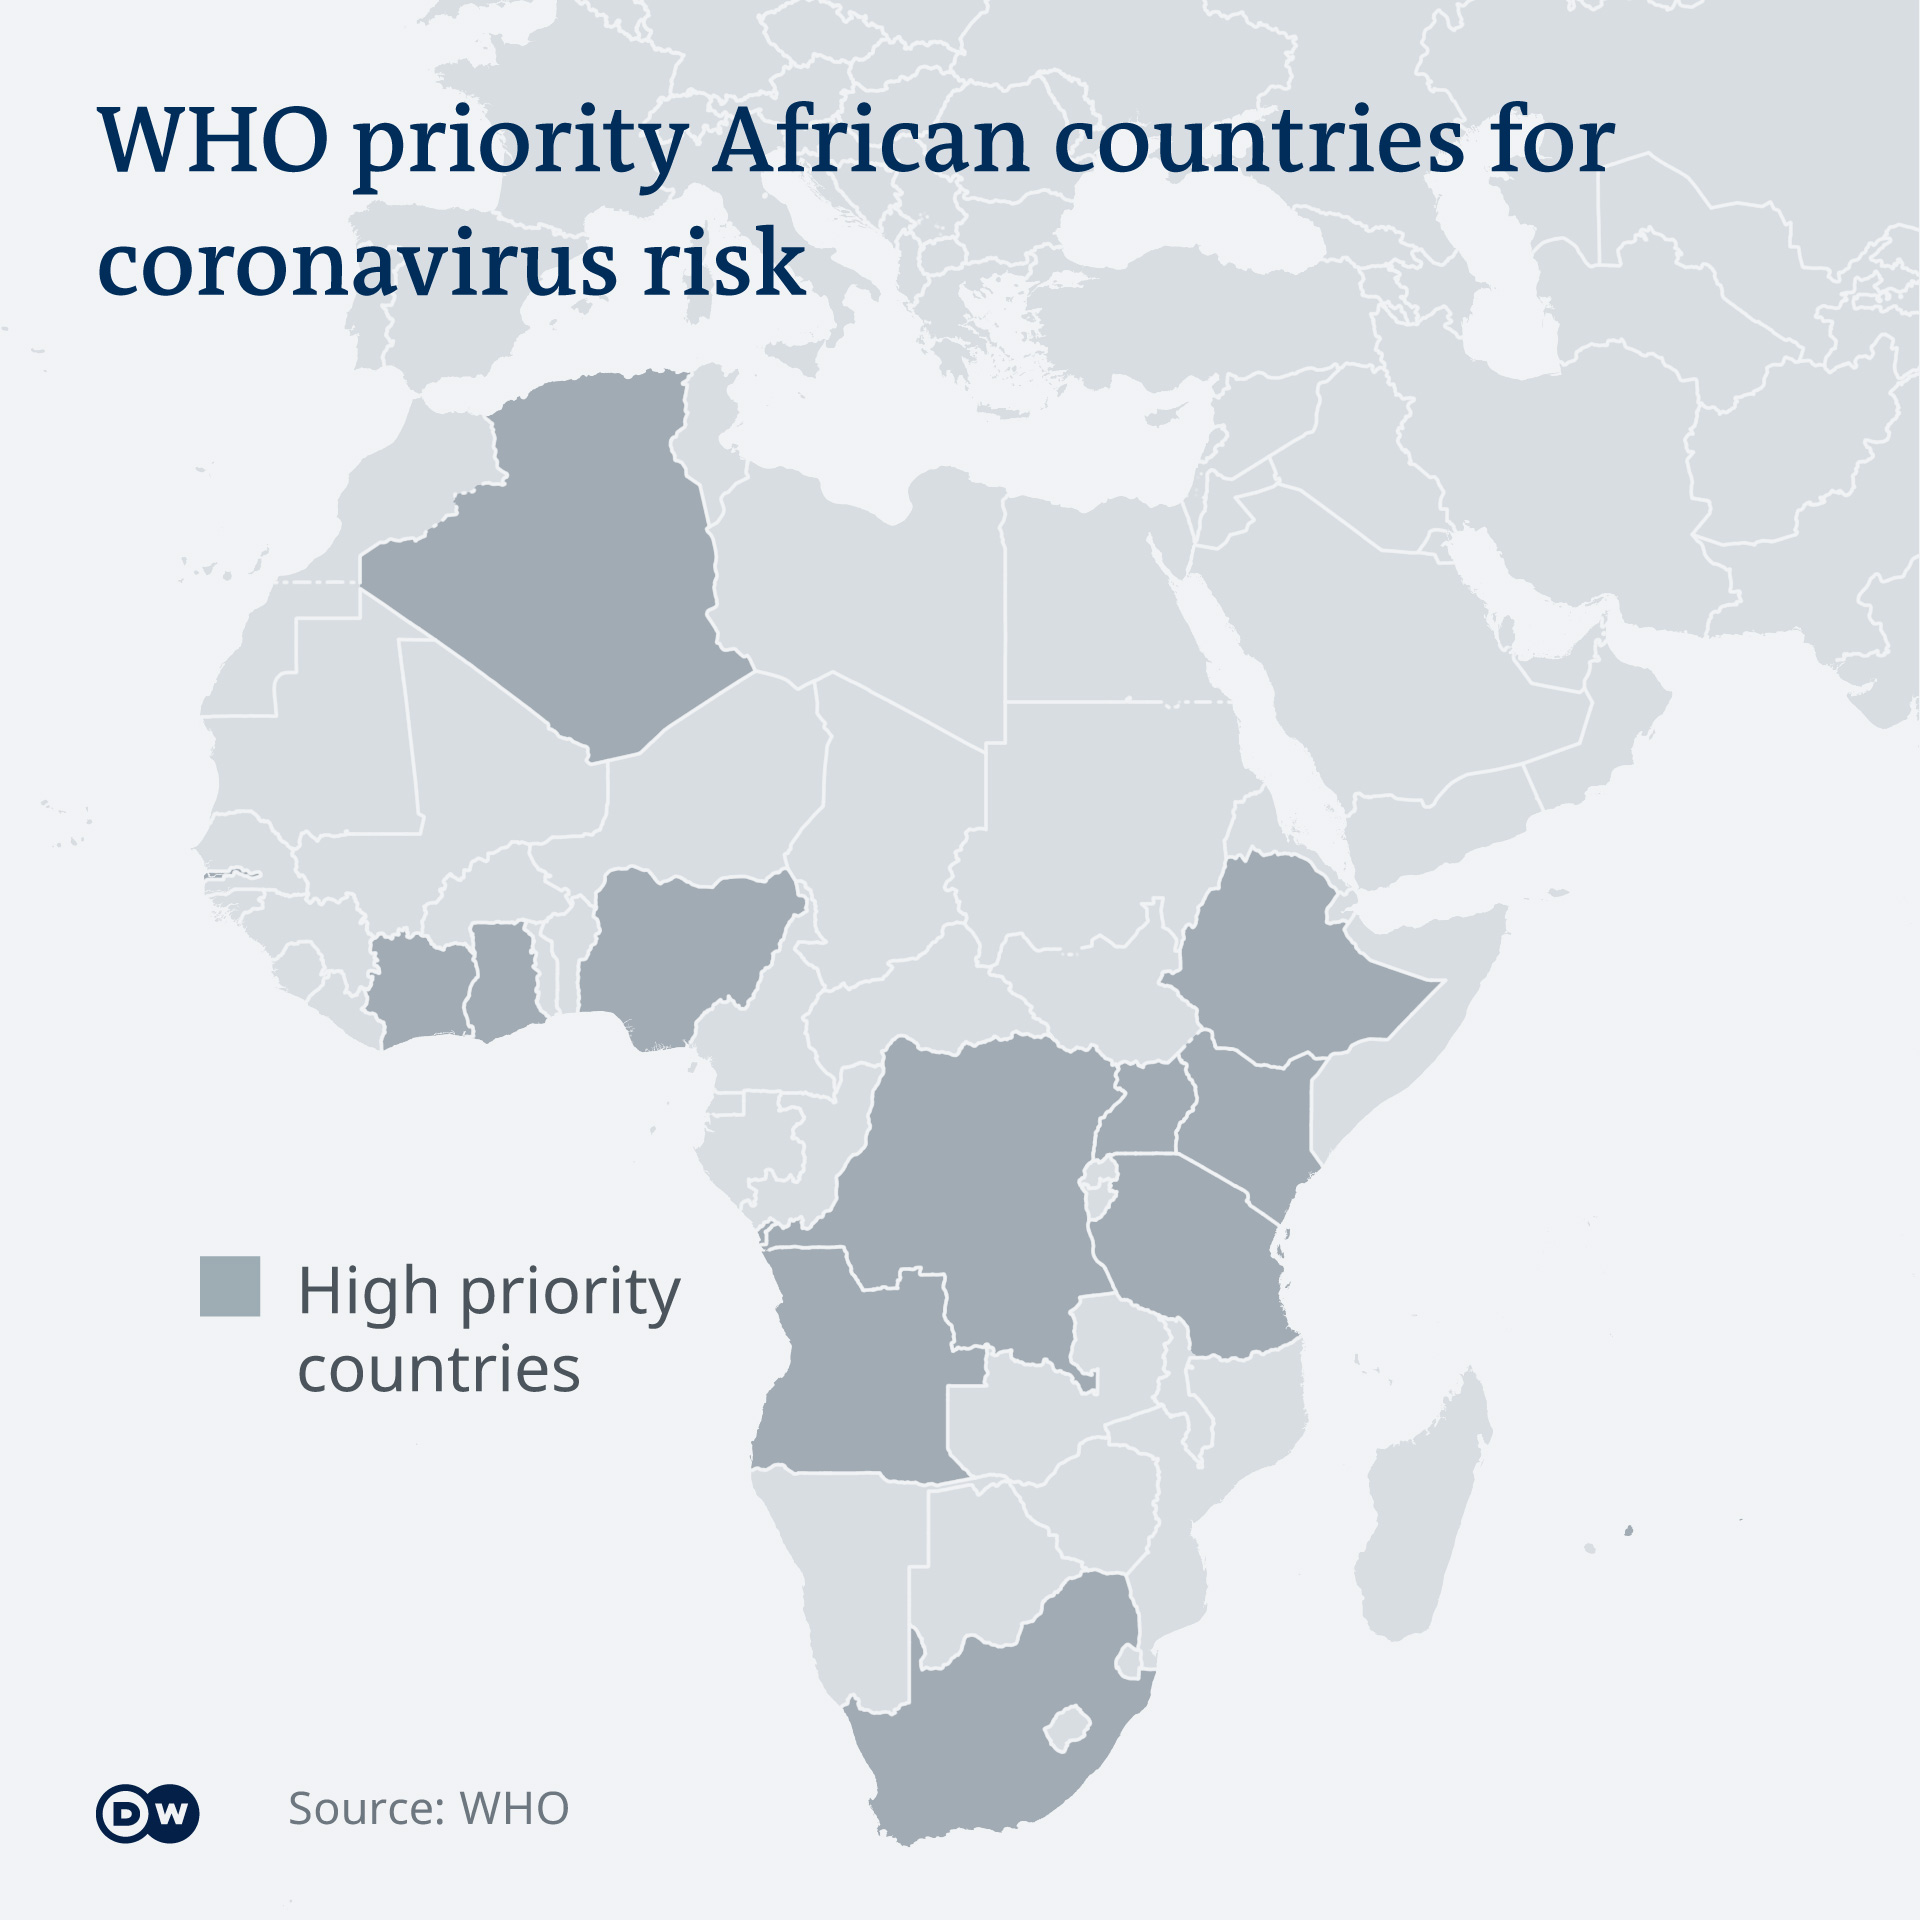 A map of Africa showing the countries where the risk of coronavirus is high